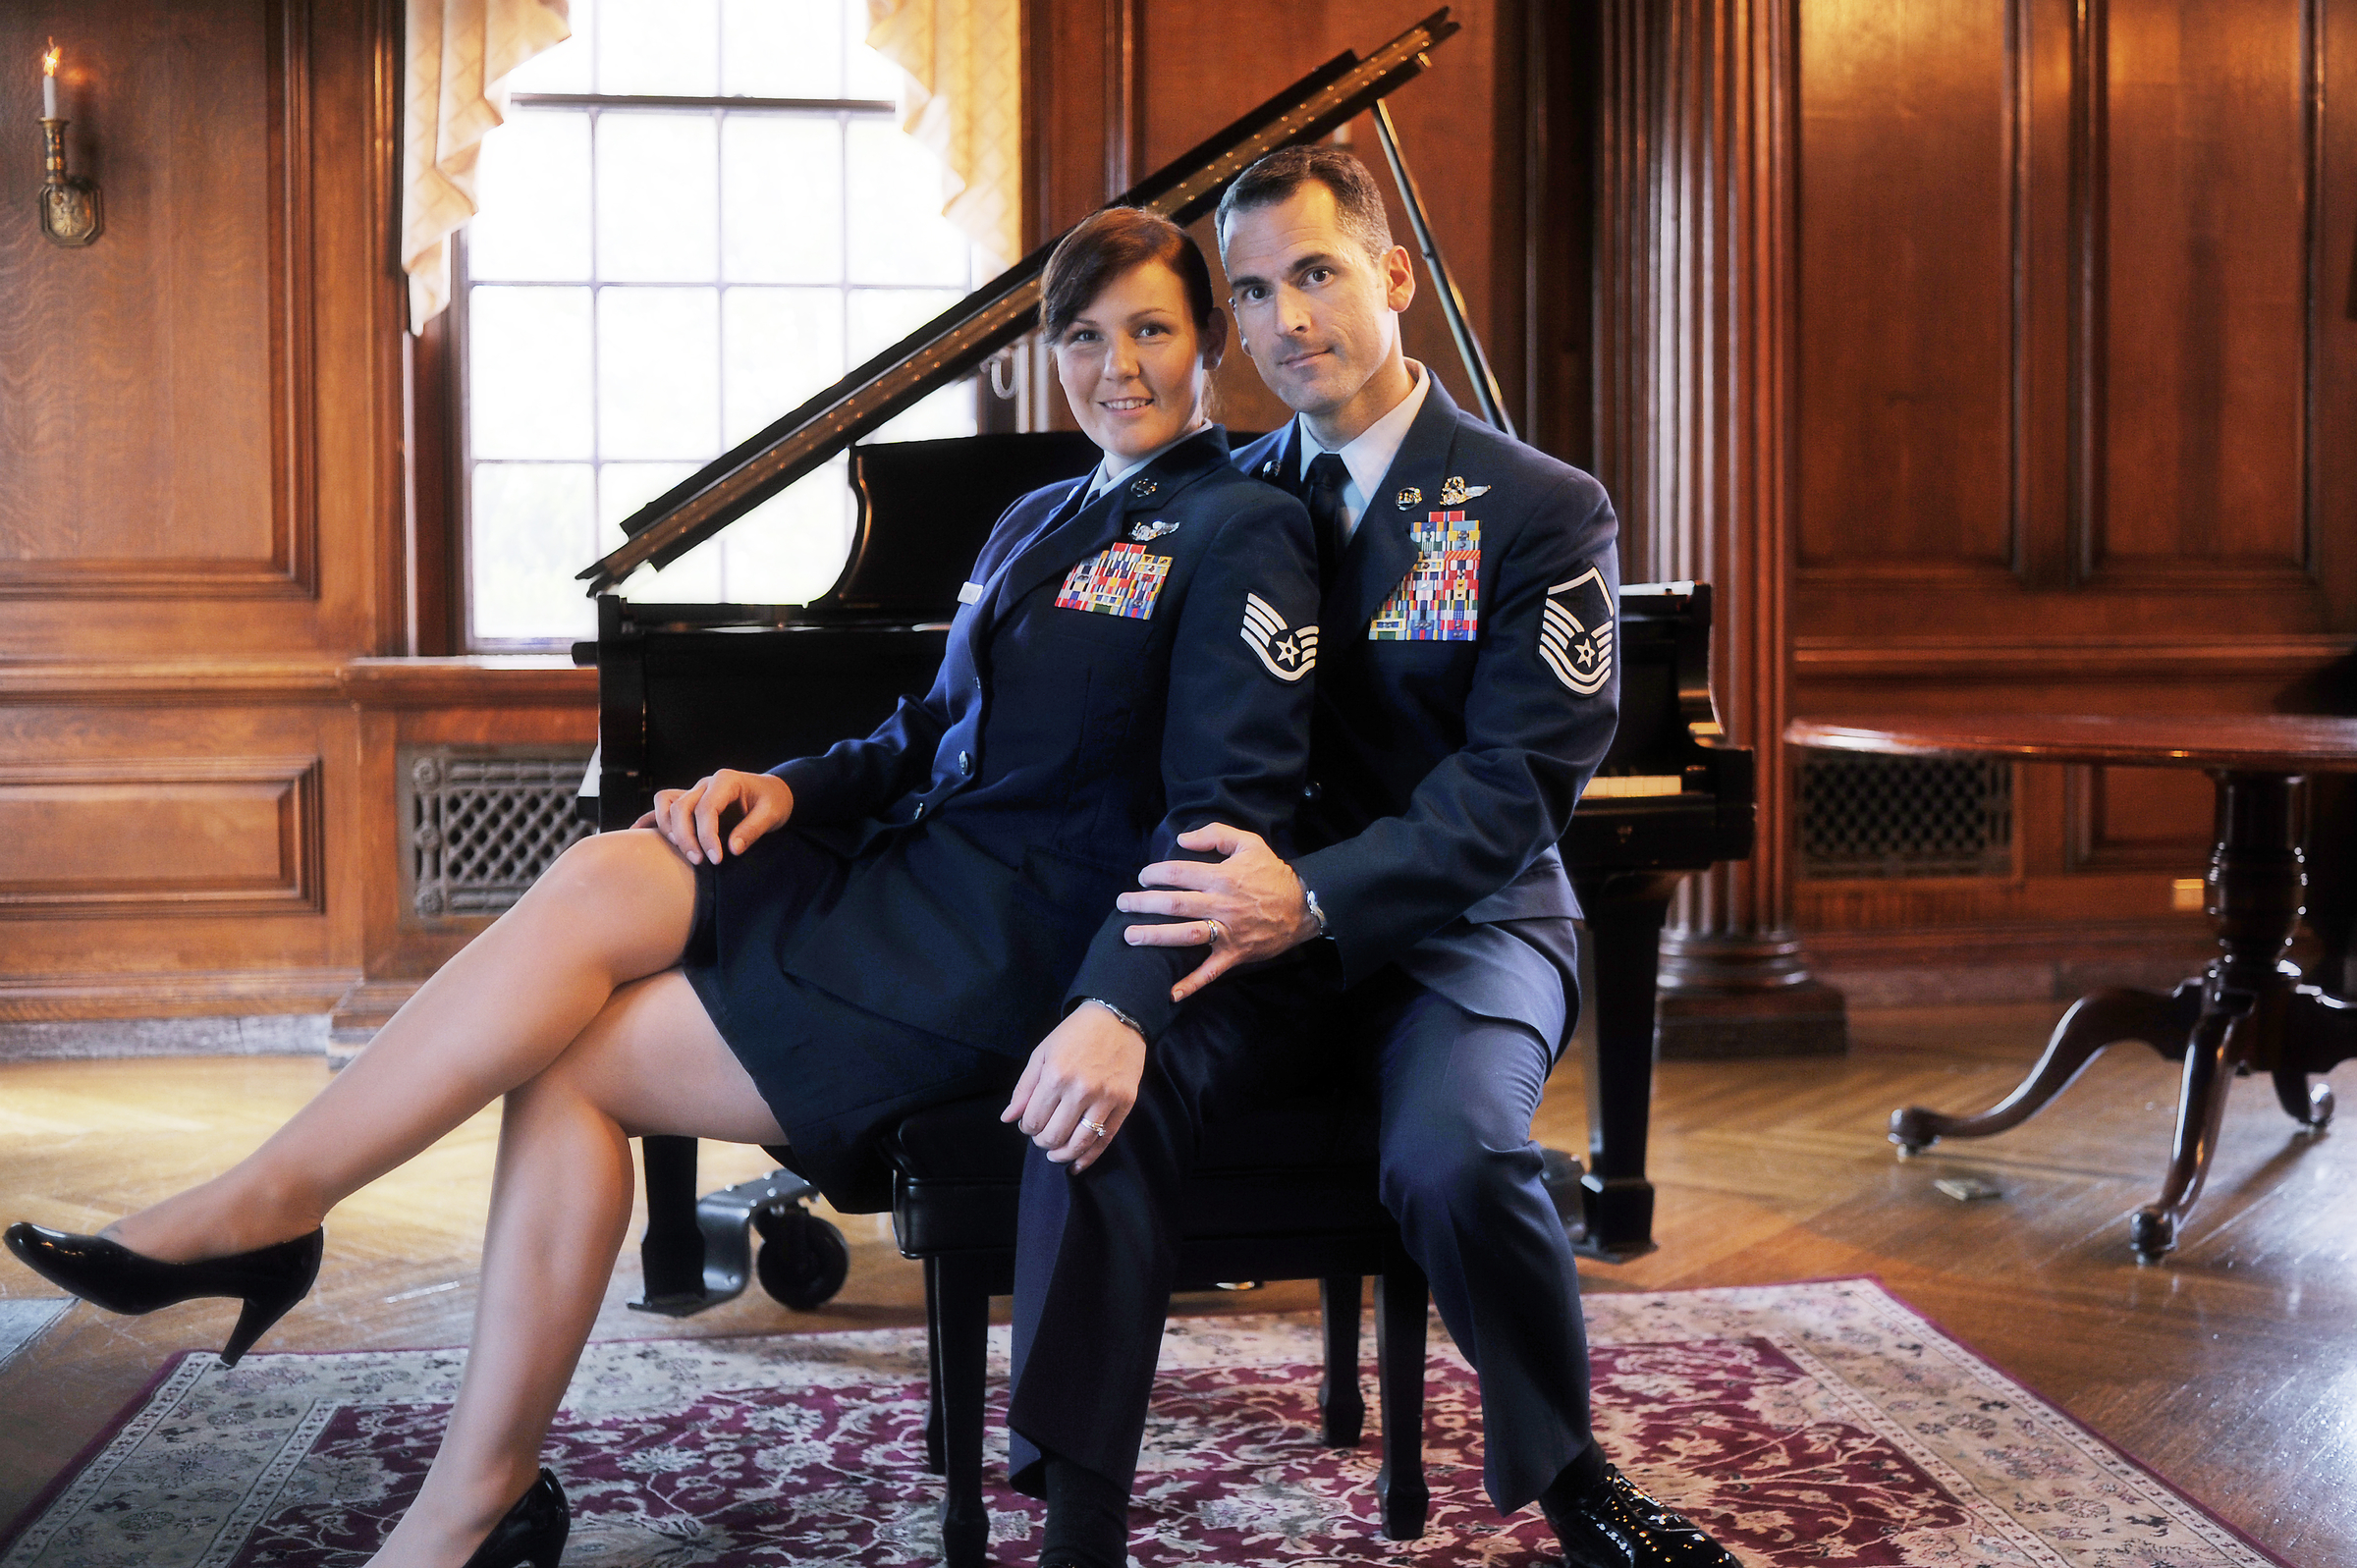 Staff Sergeant Stacy Pearsall and her husband, Master Sergeant Andy Dunaway, attend a gala in Washington D.C. 2009 © Stacy L. Pearsall